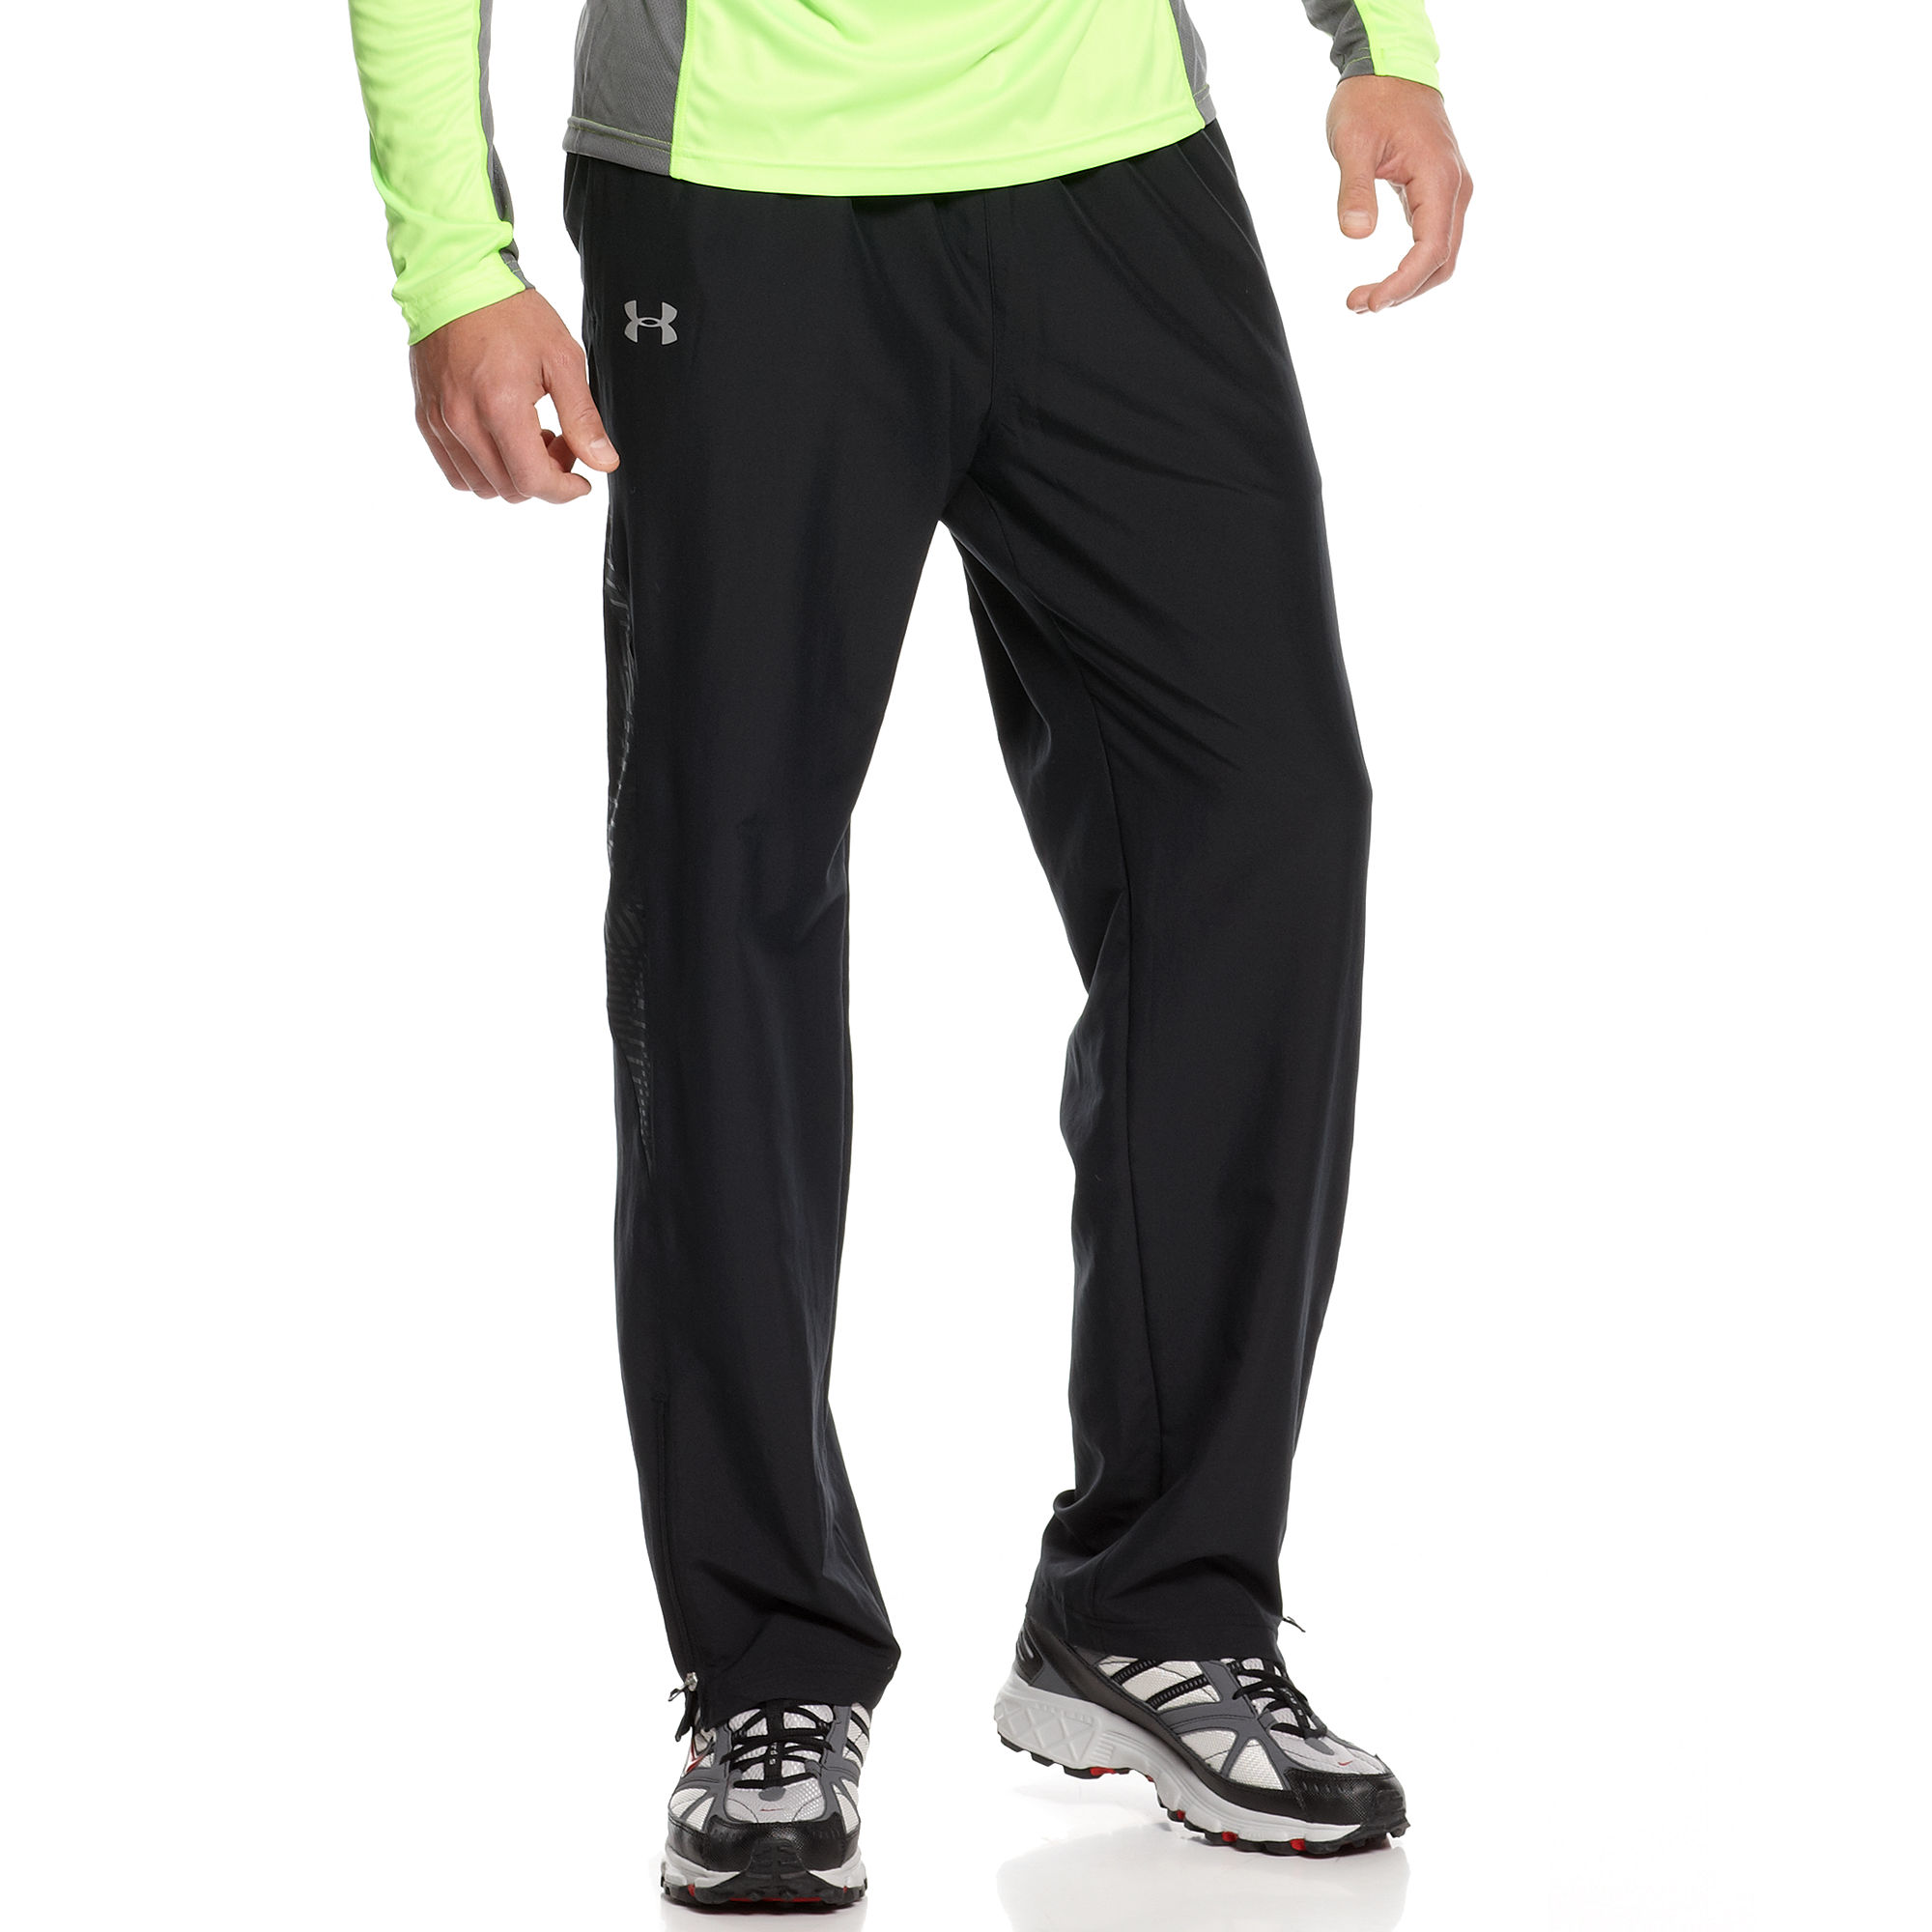 Under armour imminent performance running pants in black for men